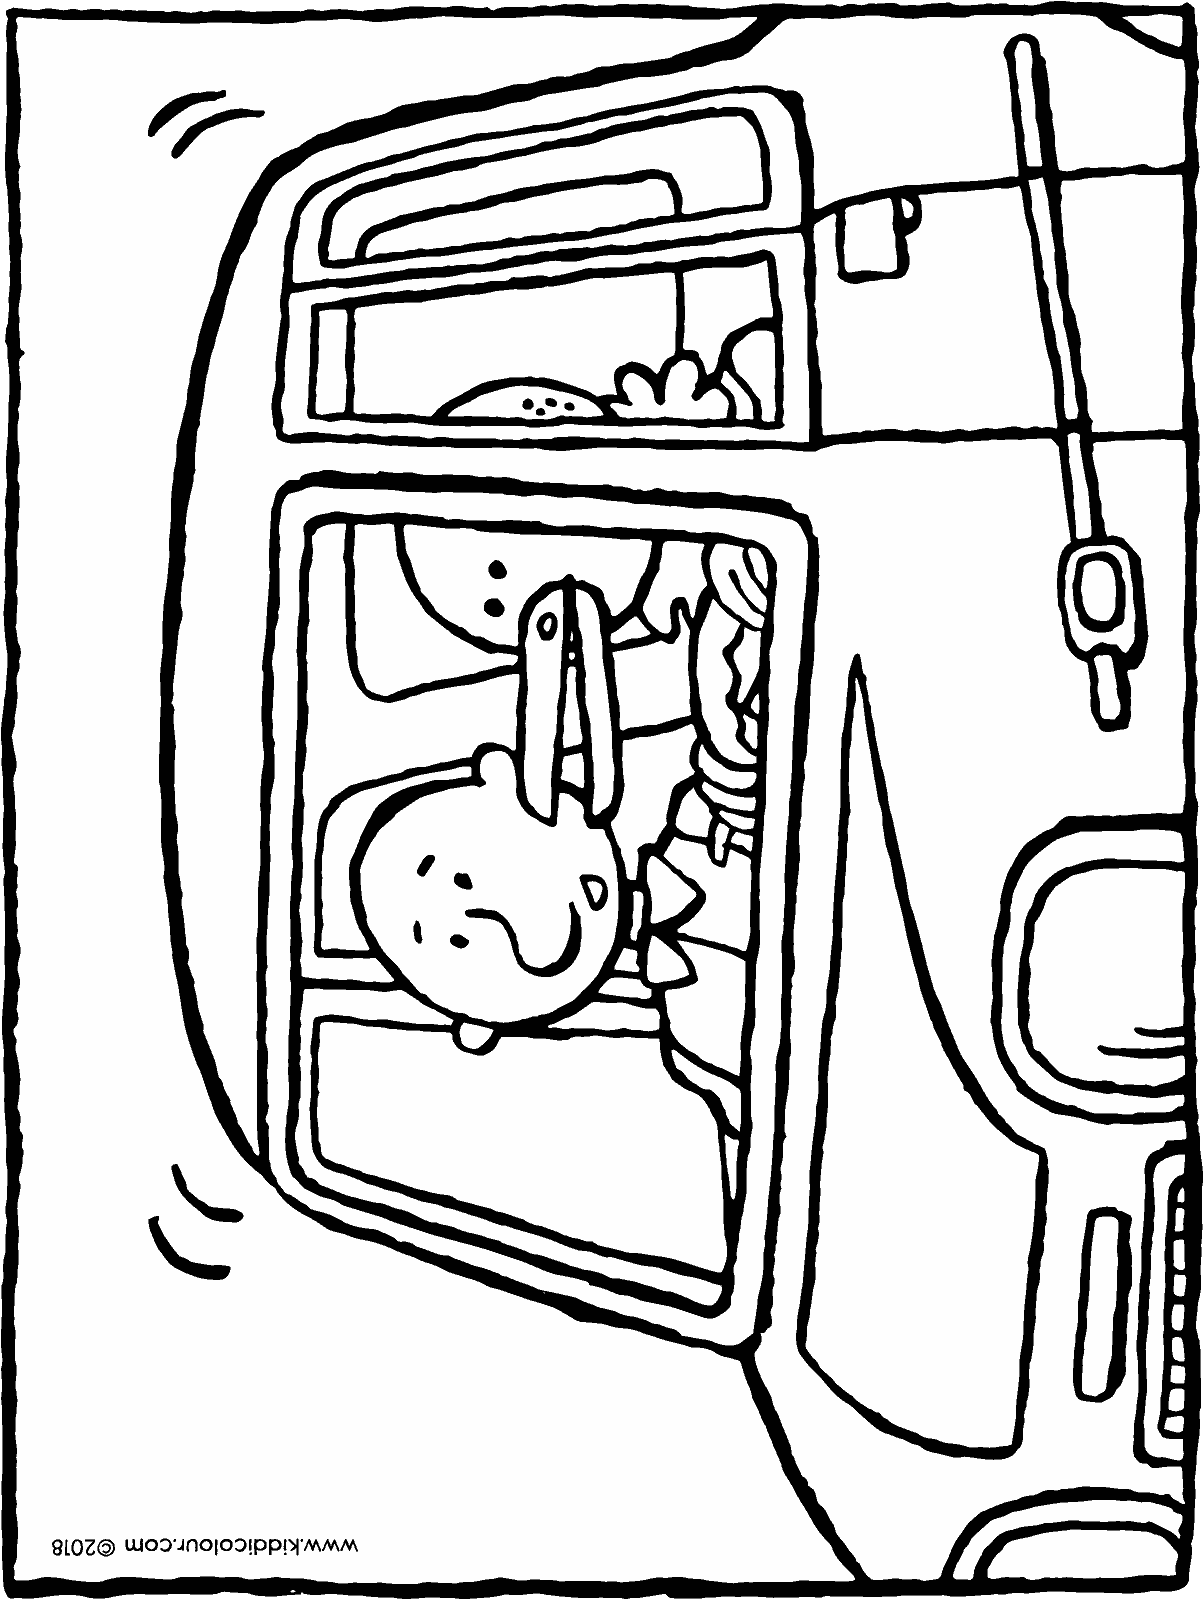 together in a small car colouring page drawing picture 01H